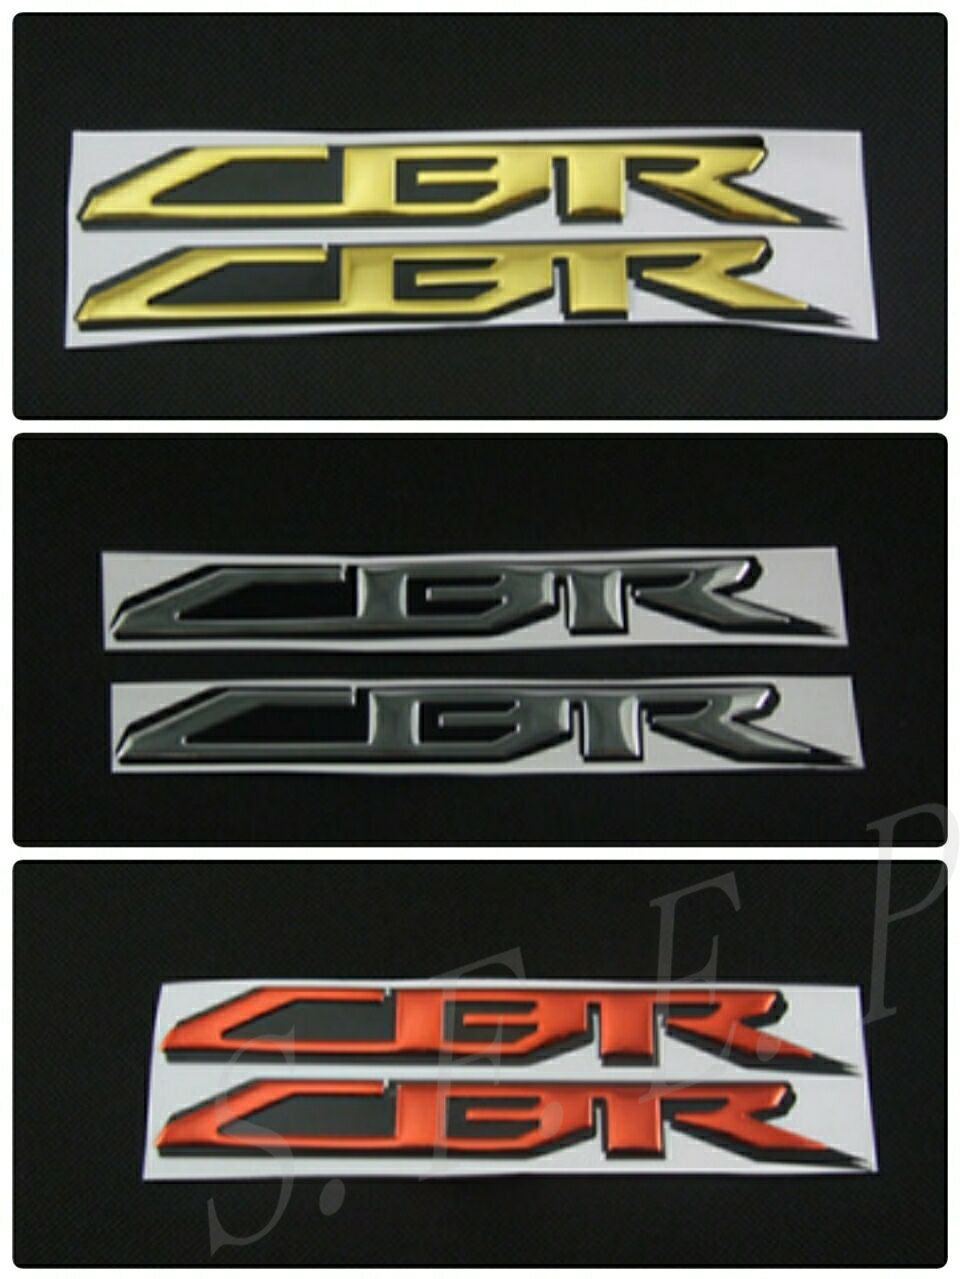 Motorcycle Emblem Badge Decal 3D Tank Wheel Logo For Honda CBR1000RR CBR600RR CBR650F CBR500R <font><b>CBR300R</b></font> CBR250R CBR954RR <font><b>Sticker</b></font> image